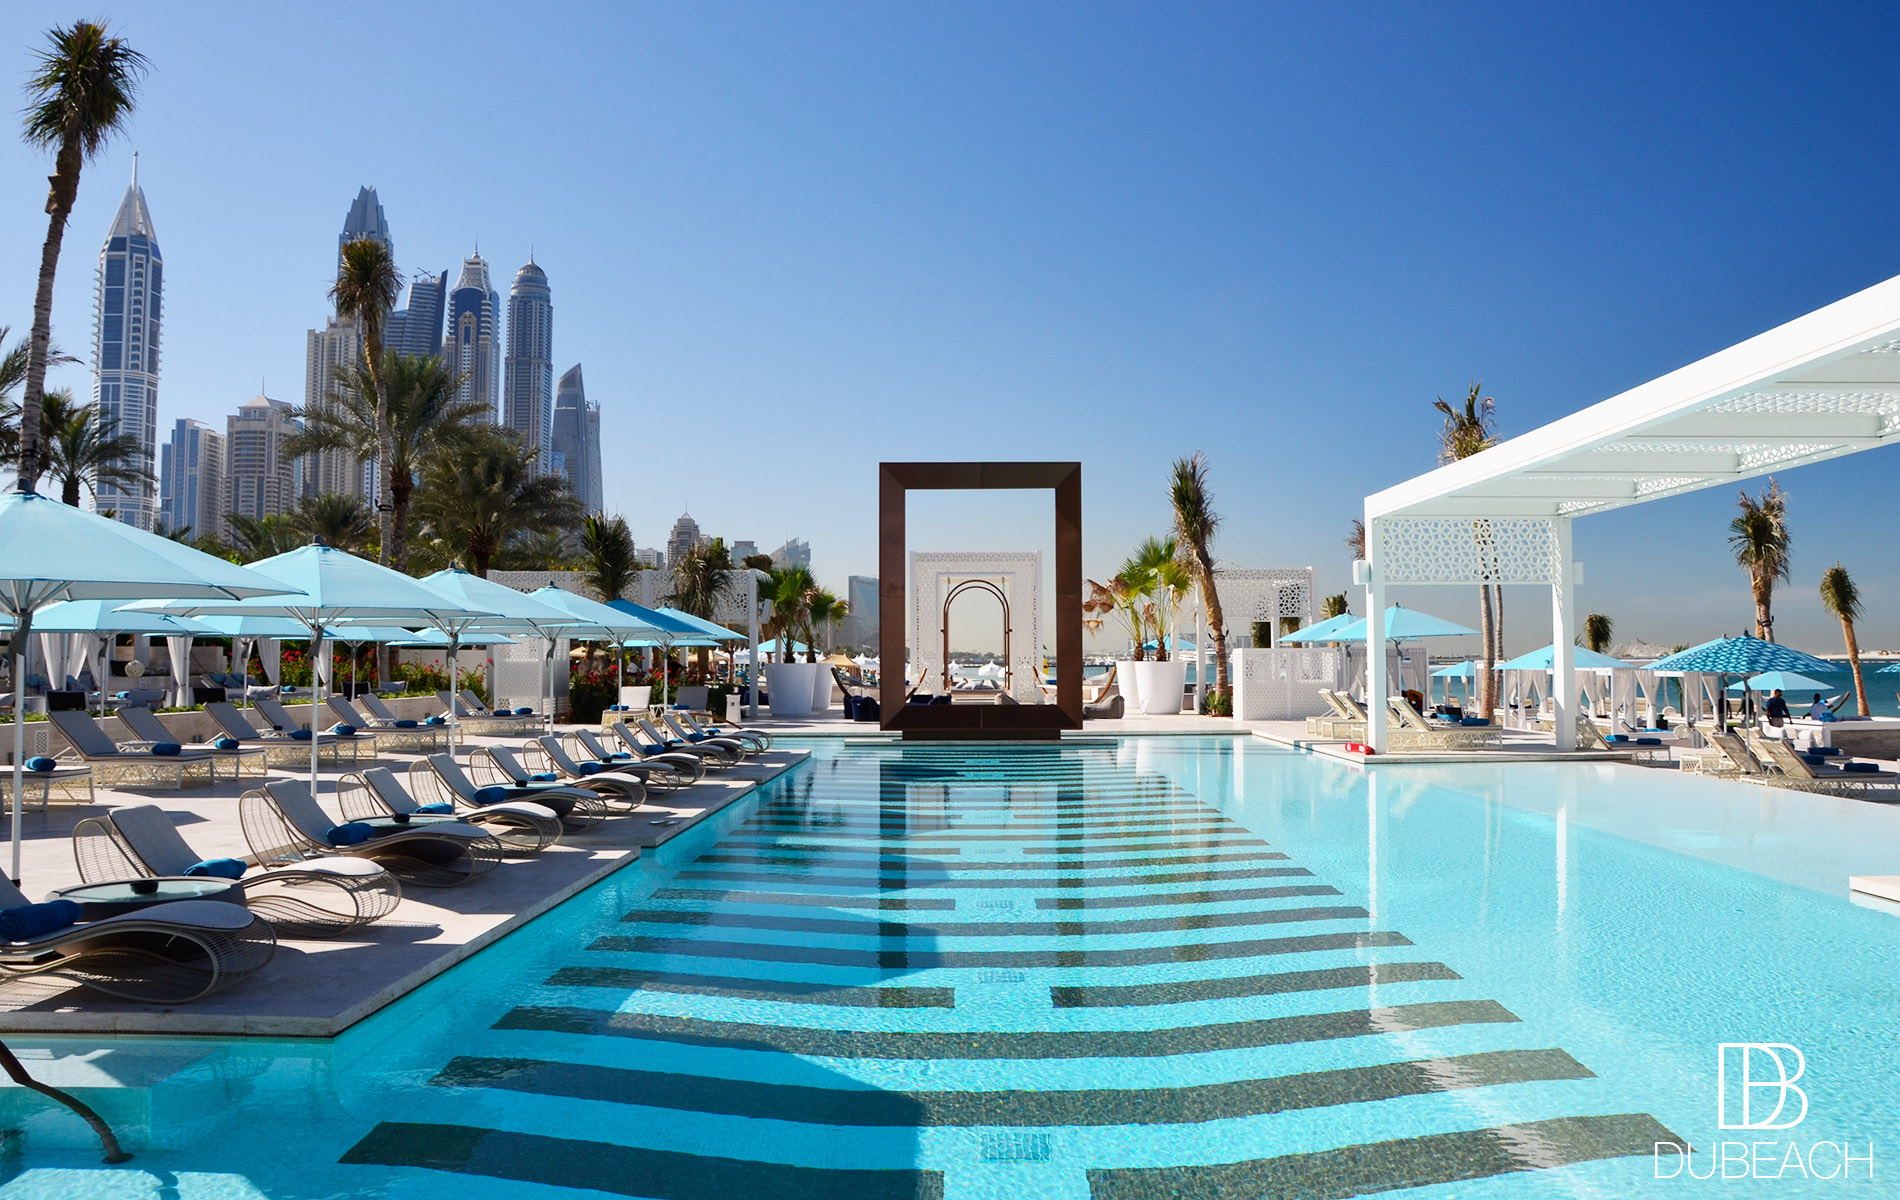 Pool parties archives discotech the 1 nightlife app - Egyptian club dubai swimming pool ...